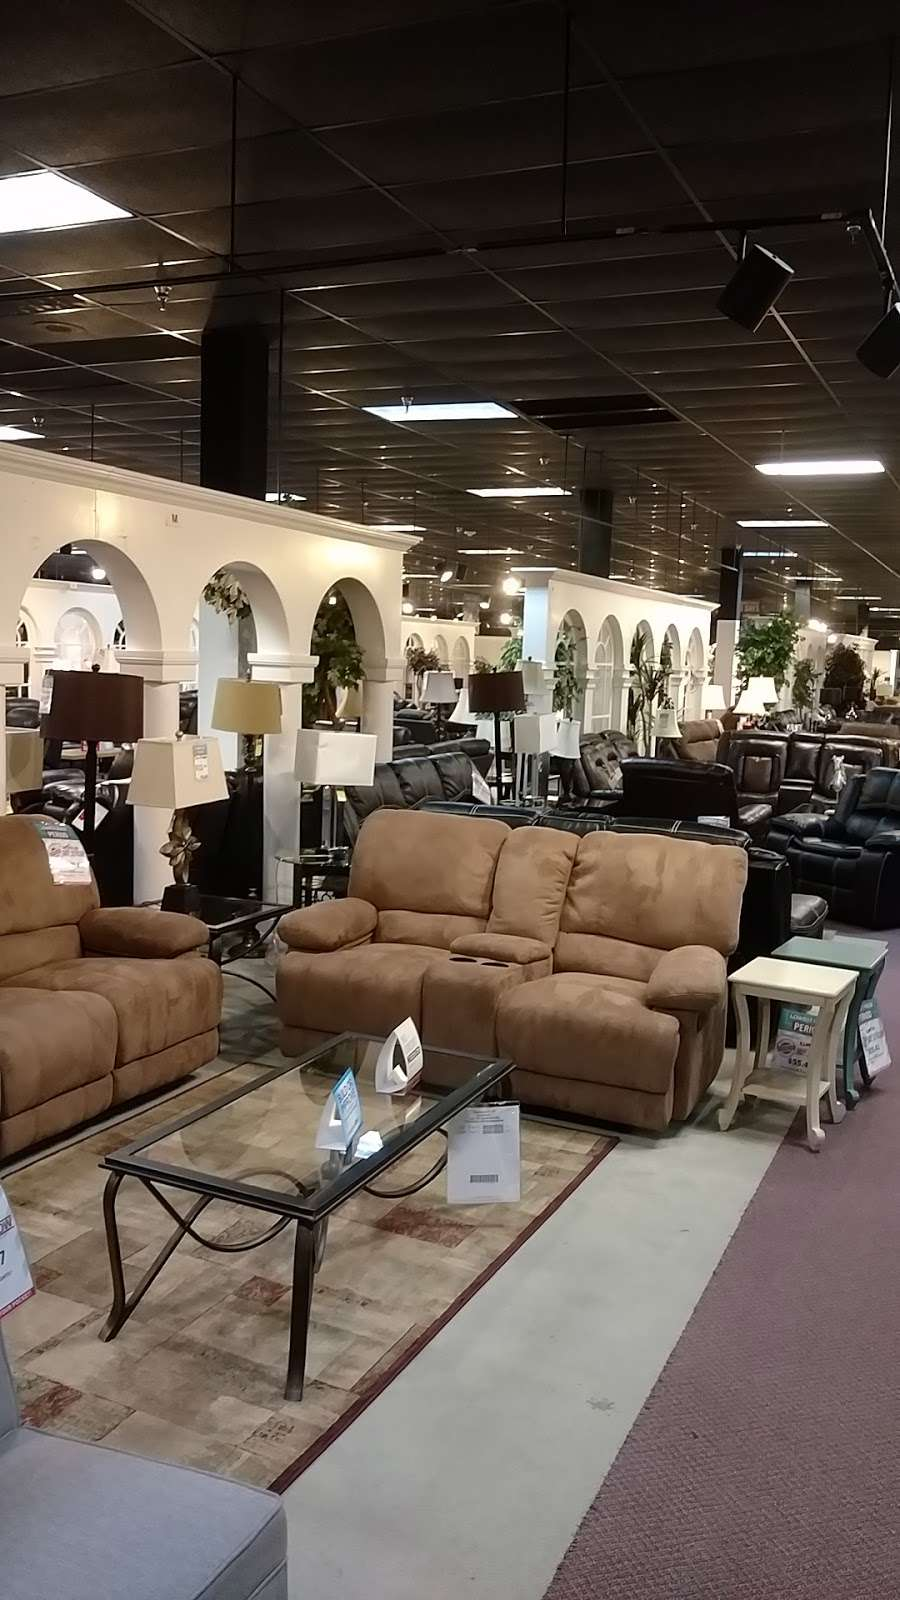 show full size bel furniture greenspoint furniture store photo 6 of 10